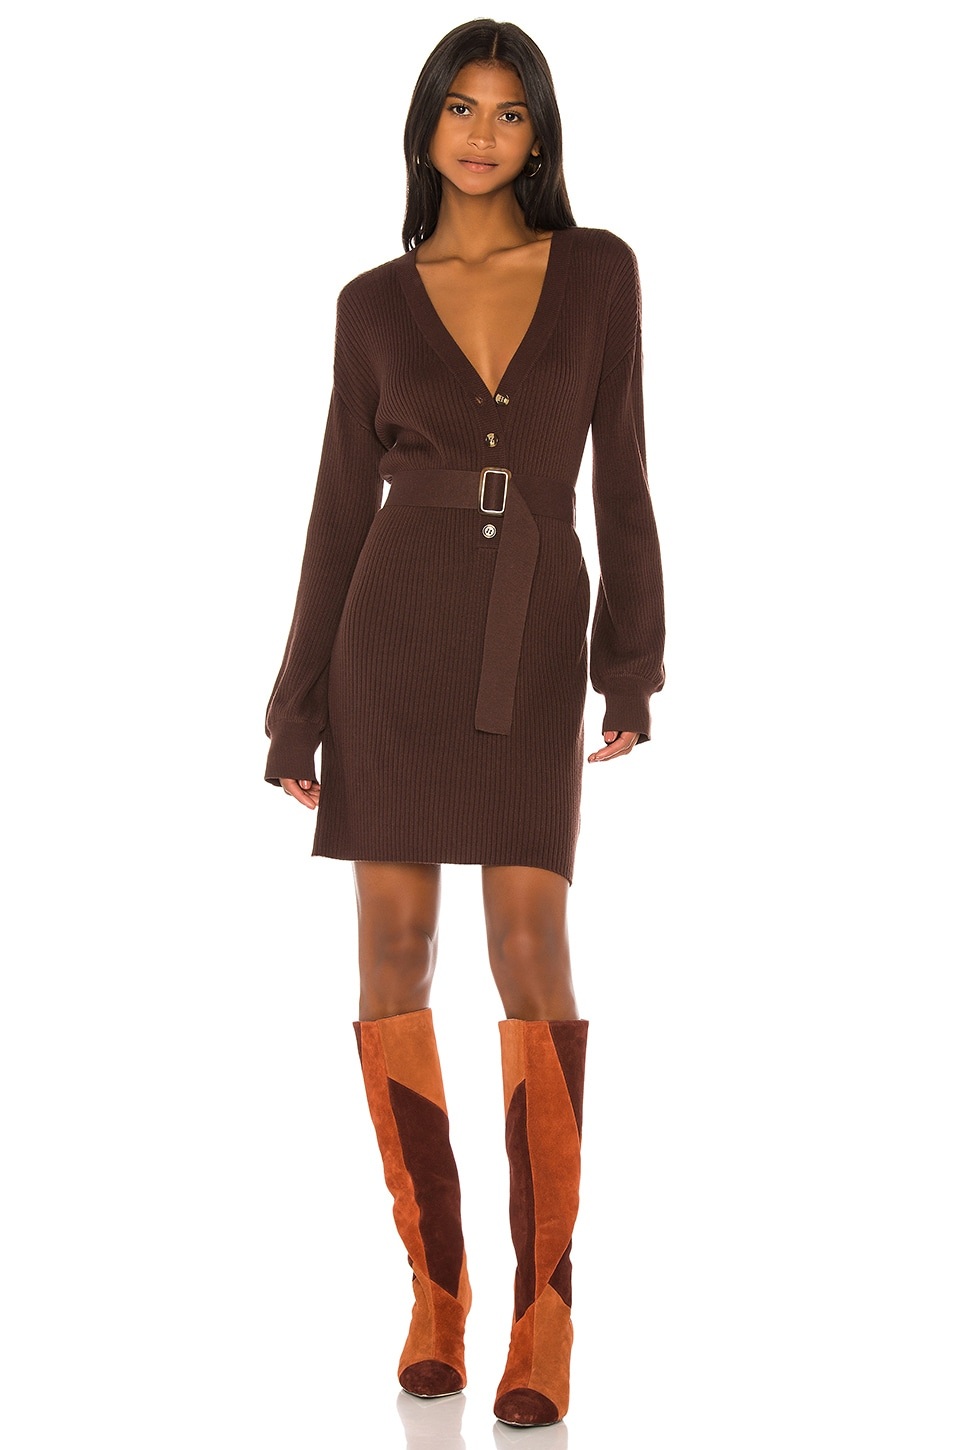 Song of Style Darcey Sweater Dress in Chocolate